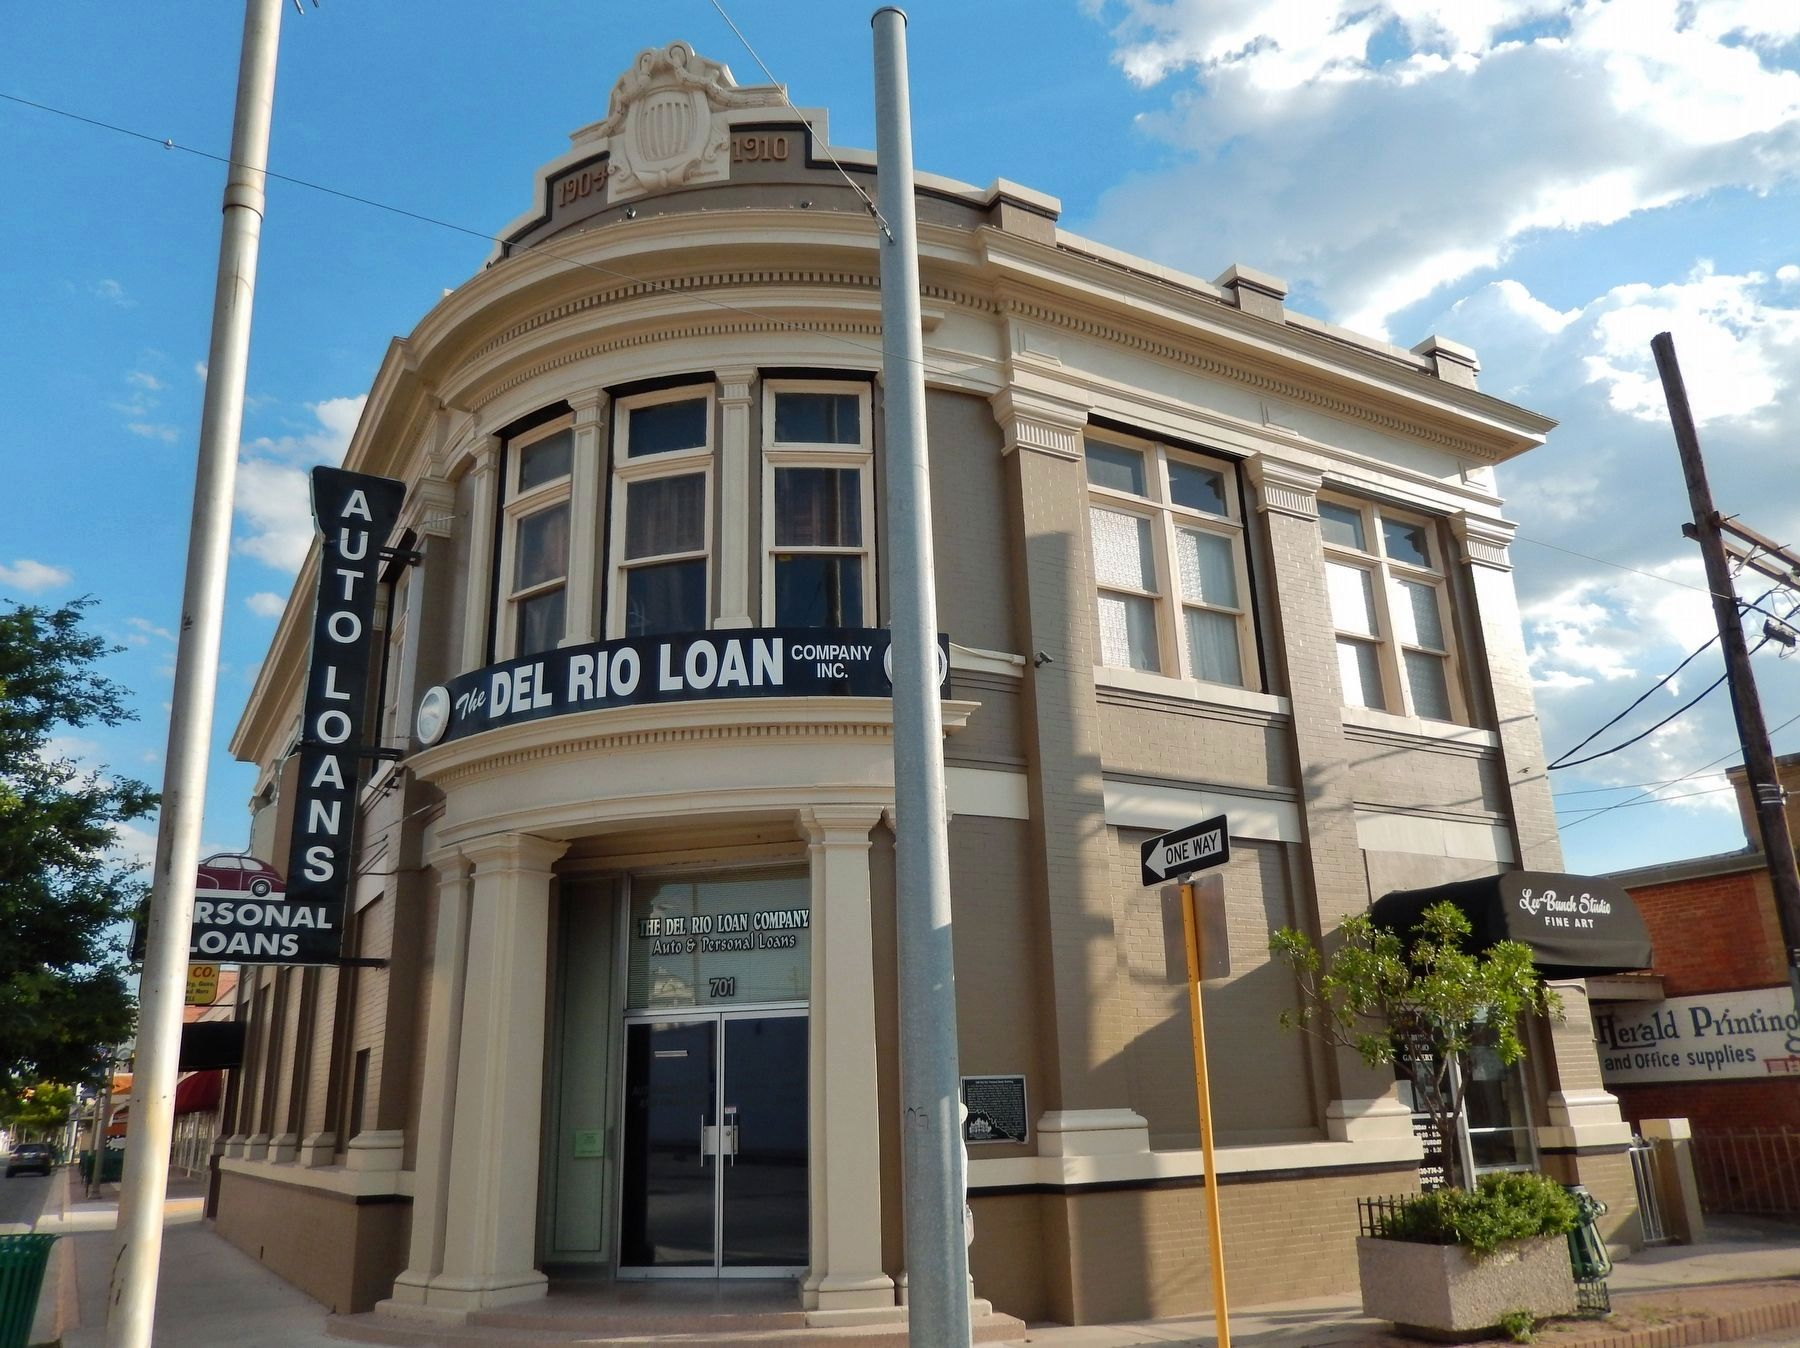 Old Del Rio National Bank Building (<i>front view</i>) image. Click for full size.